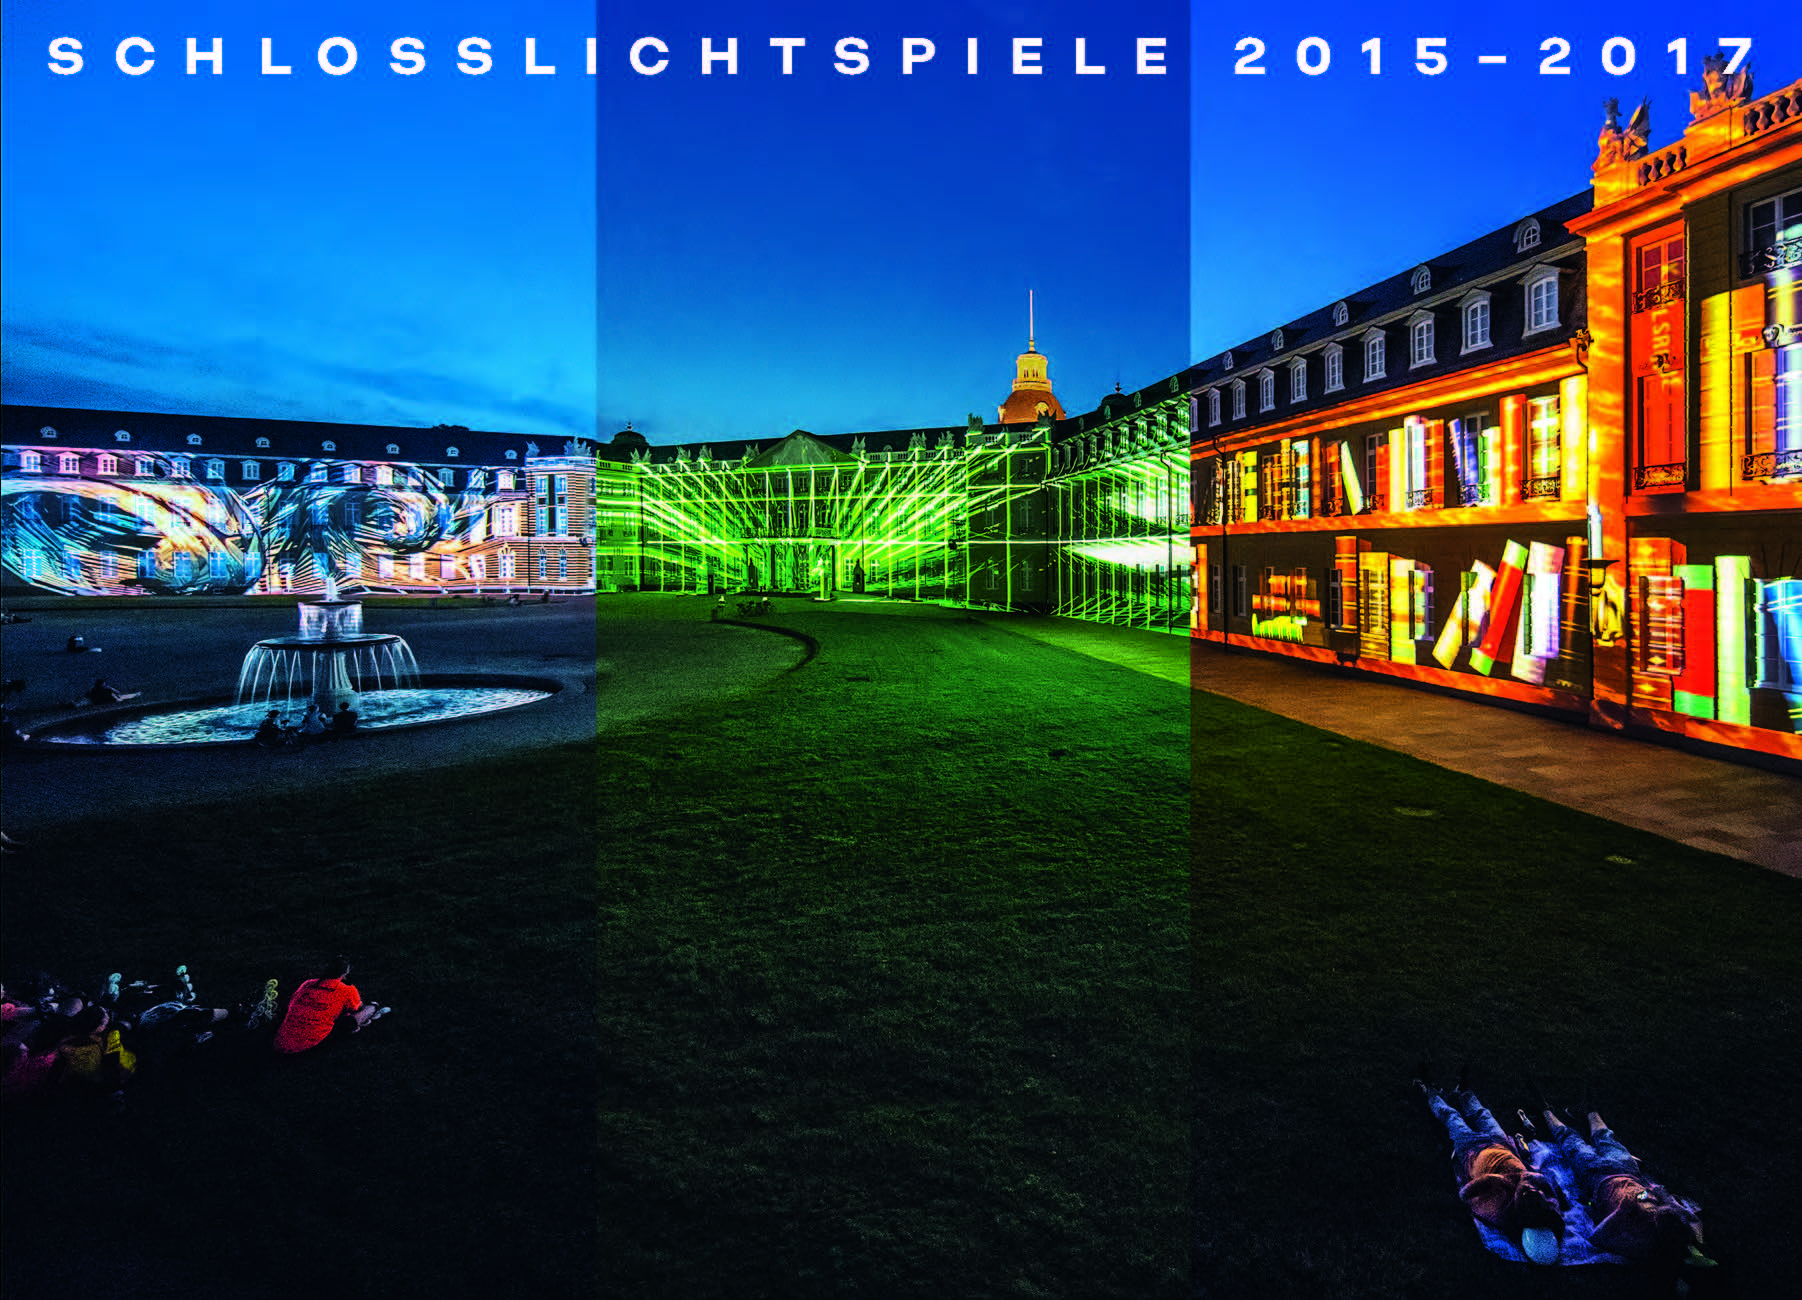 The Karlsruhe castle with colorful projections on the facade.